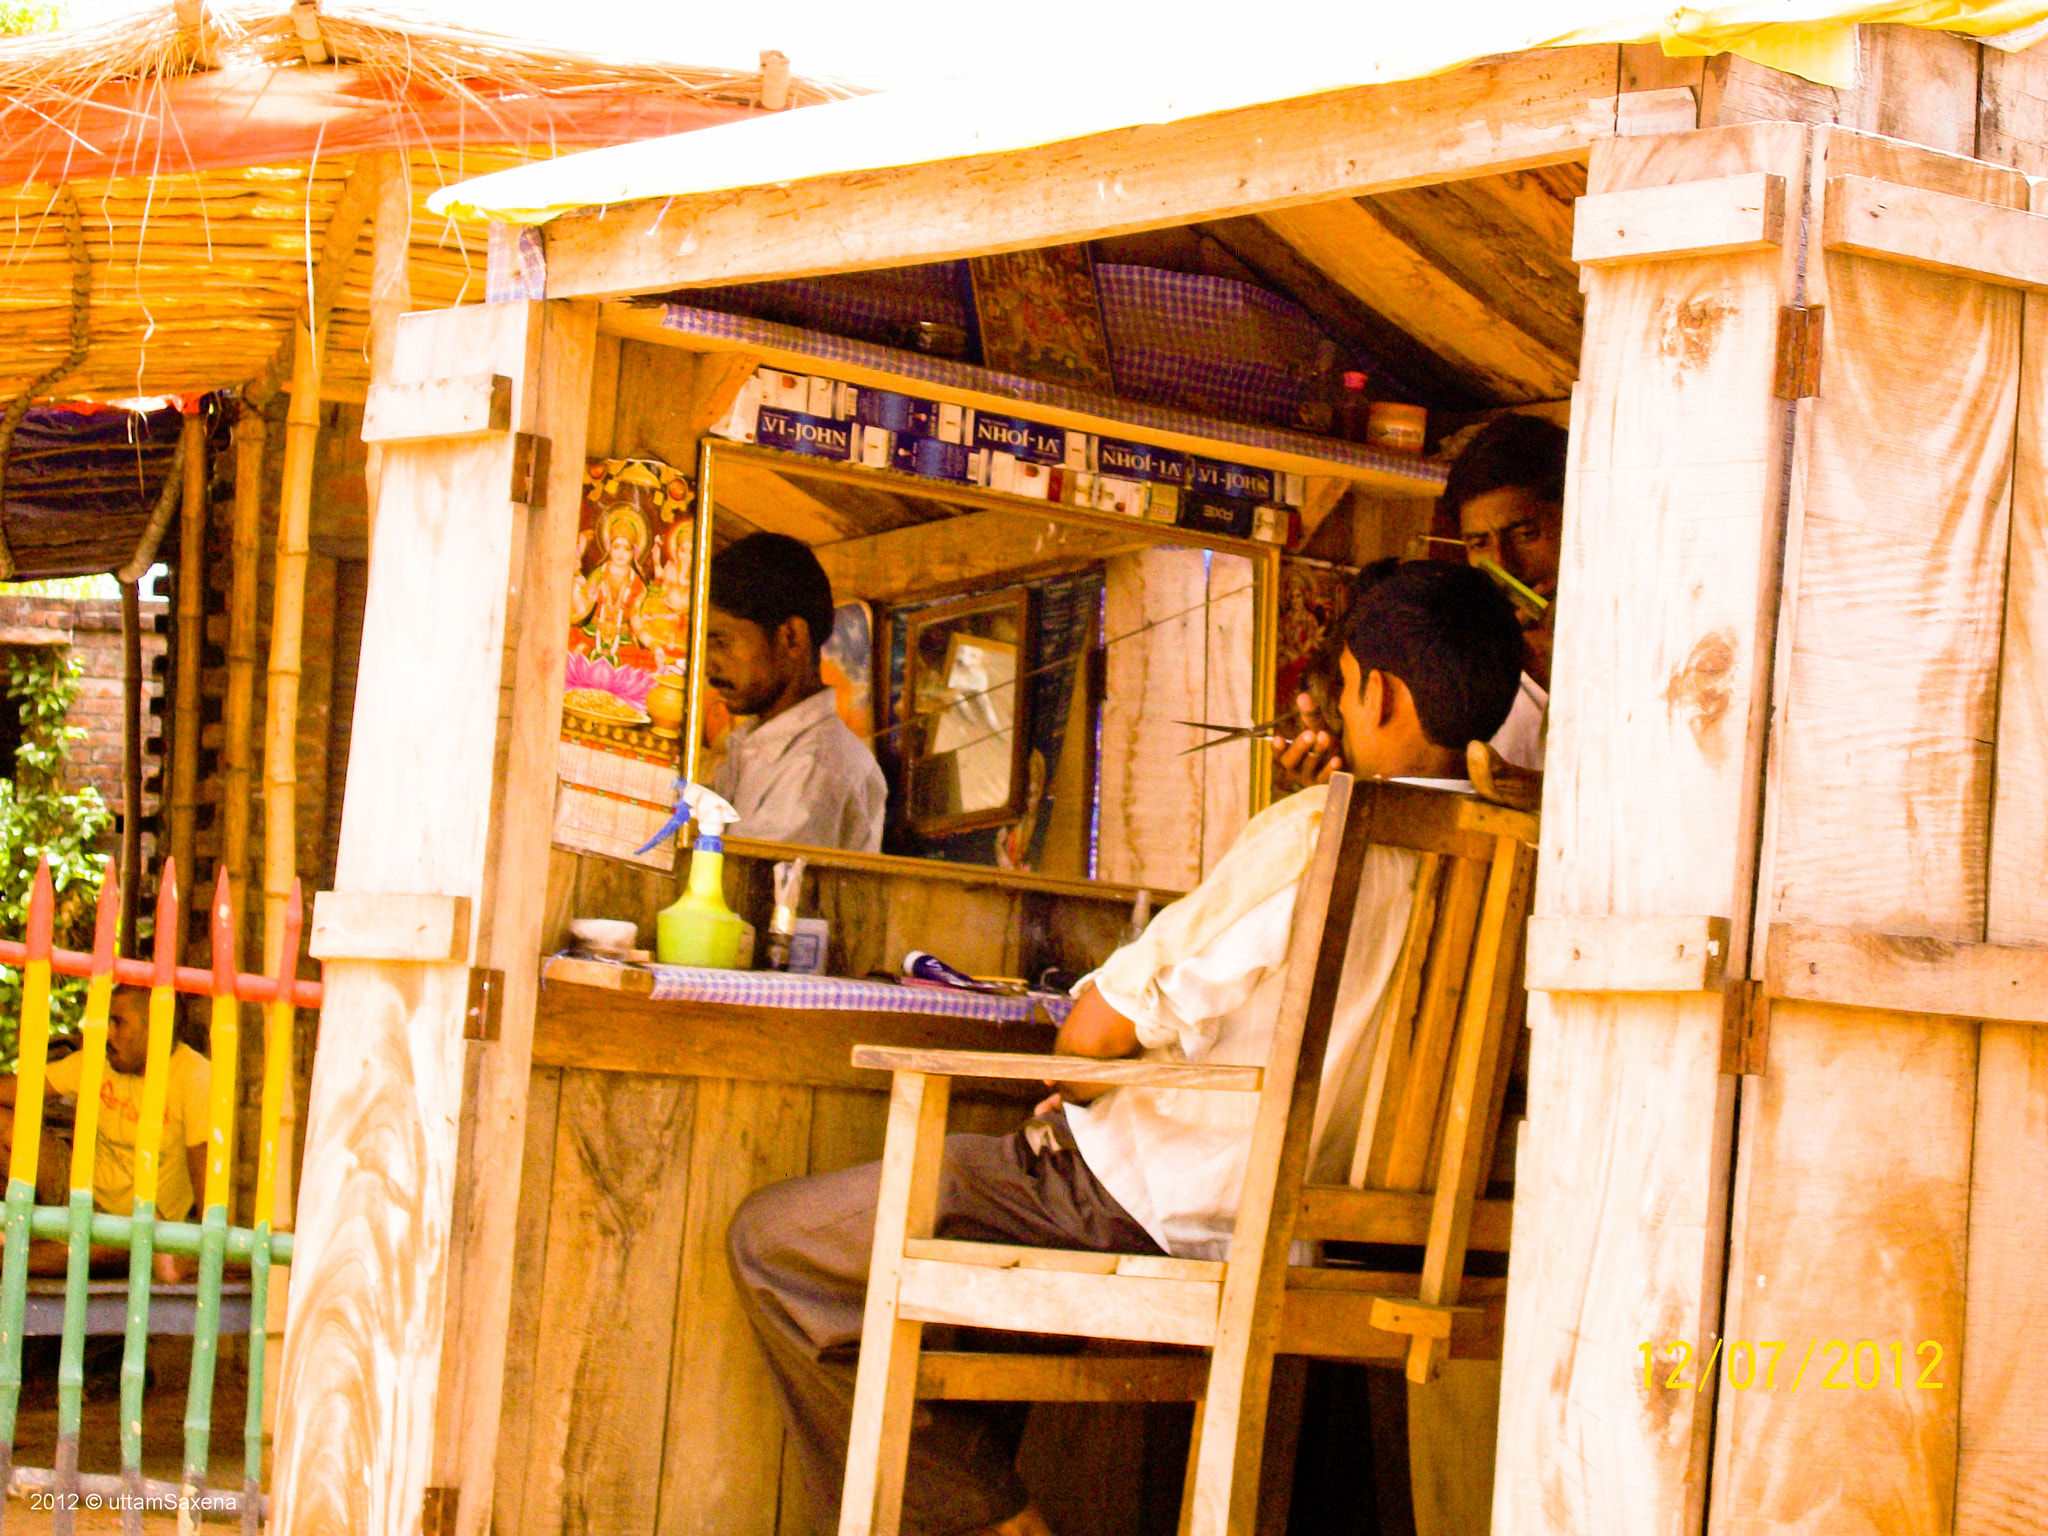 Photograph Indian Village # 2 - Barber Shop by Uttam Saxena on 500px